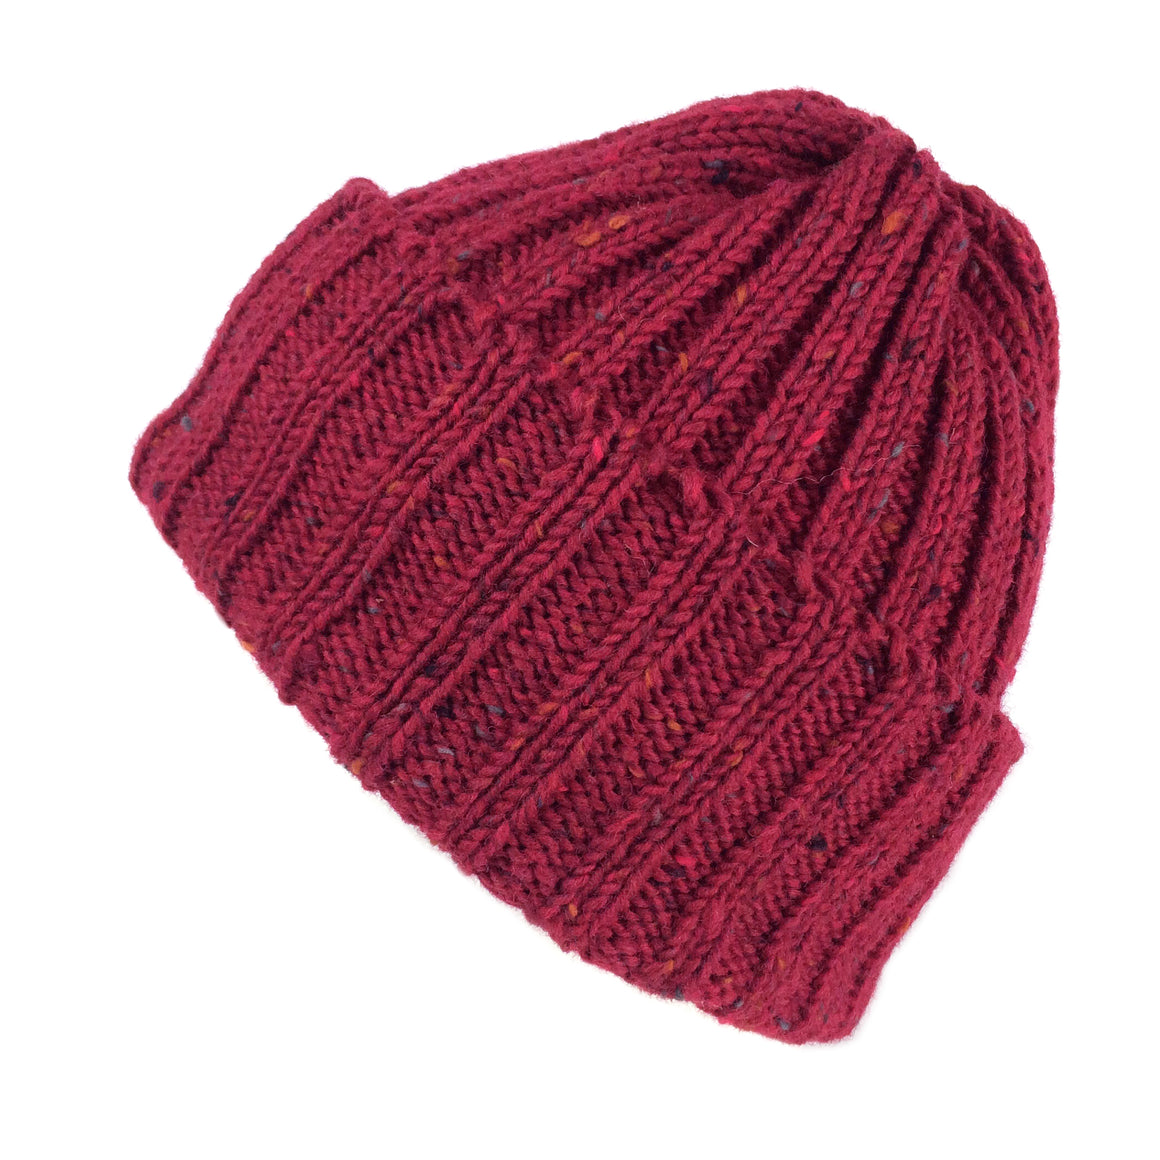 eba1a48f48d Wool Beanie Fisherman s Hat Gift for Him or Her Highland 2000 Chunky Knit  Red Burgundy Unisex ...